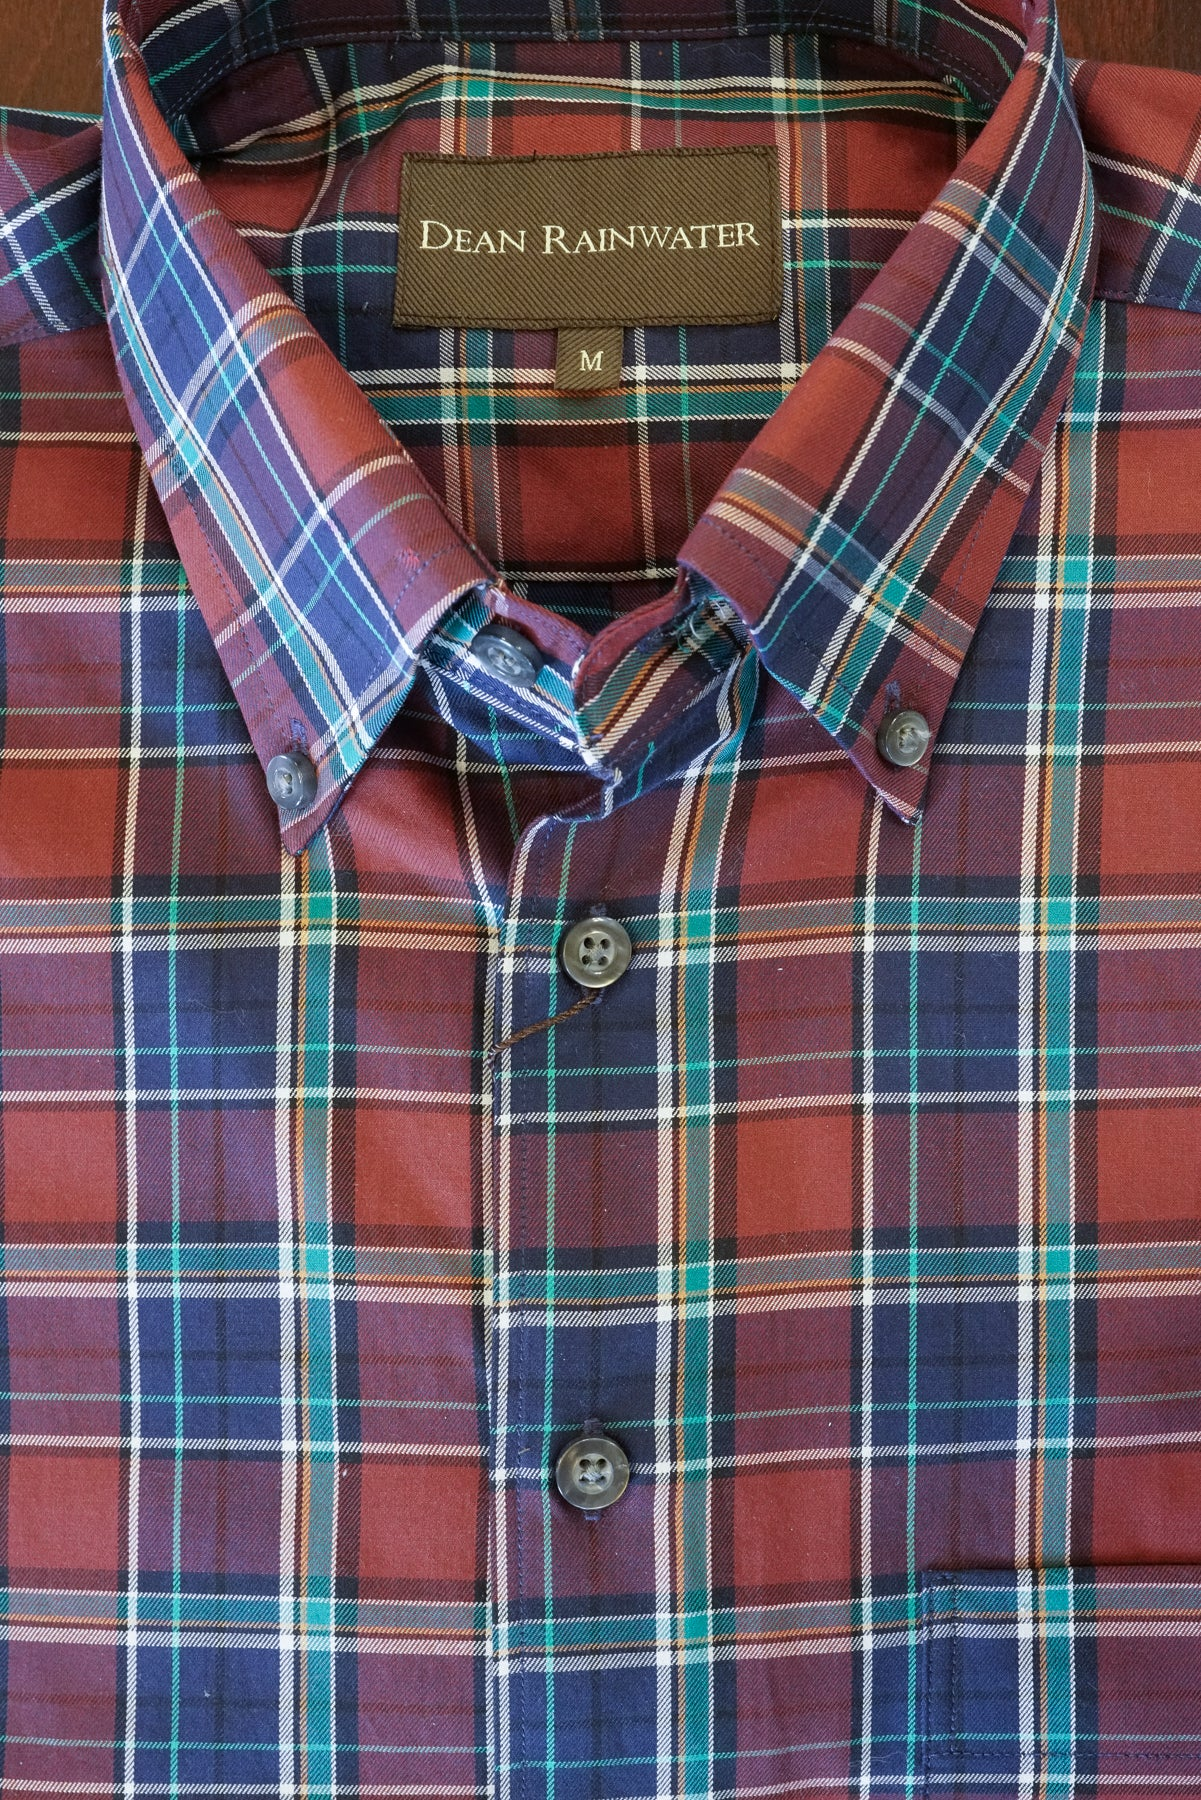 Burgundy, Navy with Teal Plaid Cotton Button-down by Dean Rainwater - Rainwater's